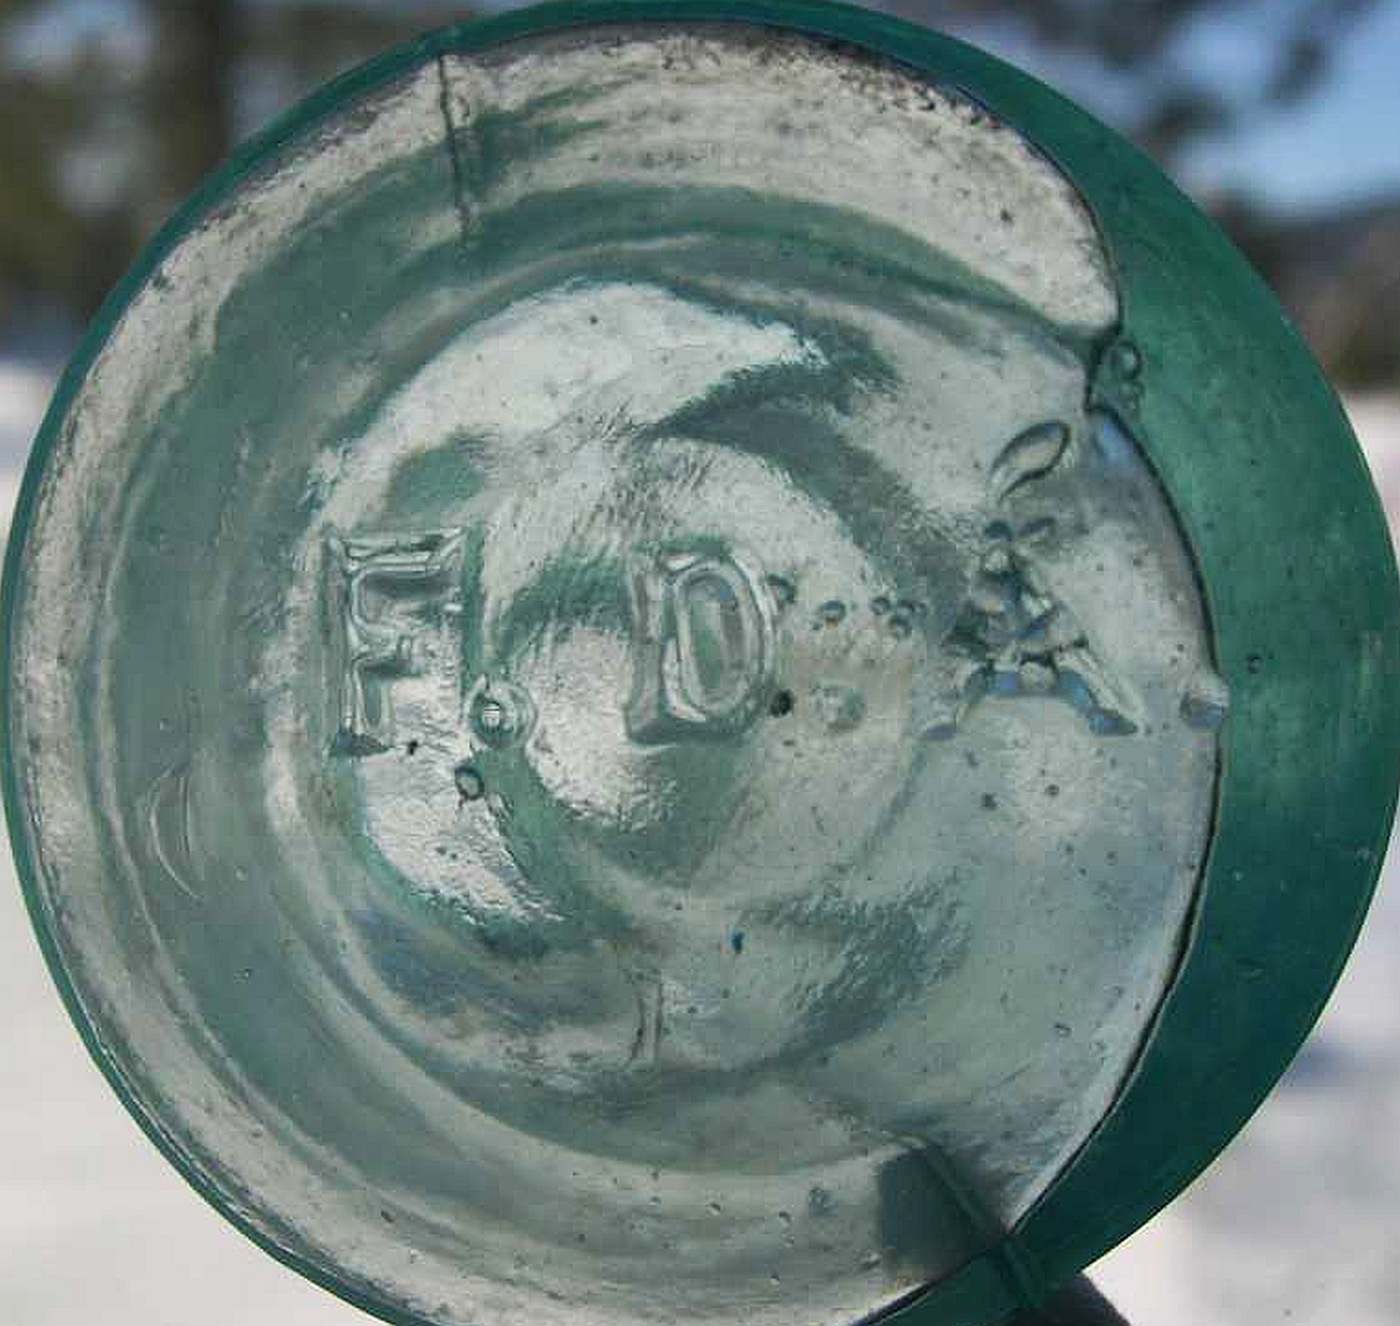 GLASS MANUFACTURERS' MARKS ON BOTTLES & OTHER GLASSWARE